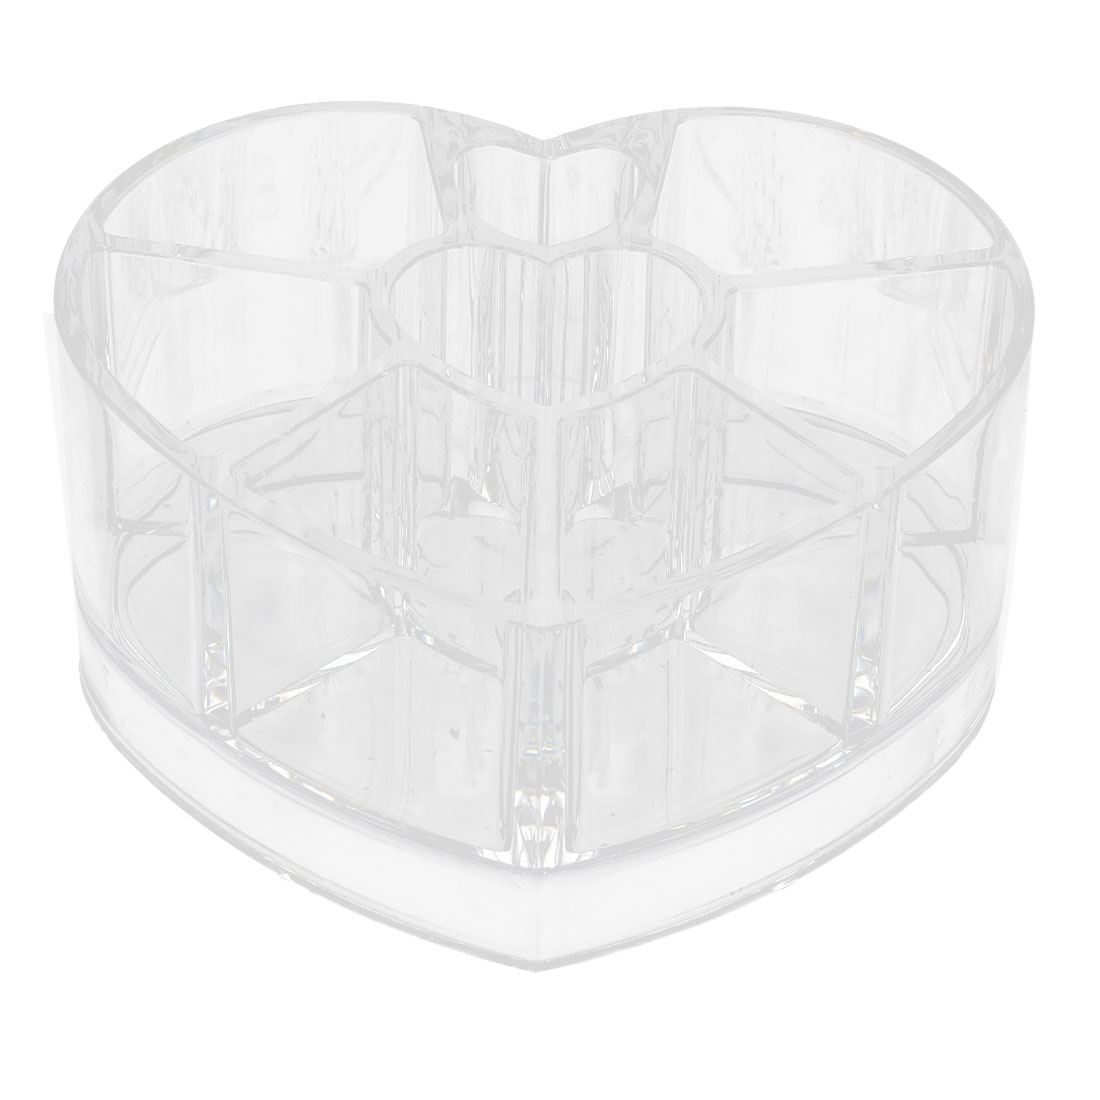 Household Acrylic Heart Shaped Jewelry Makeup Storage Box Brush Organizer Clear